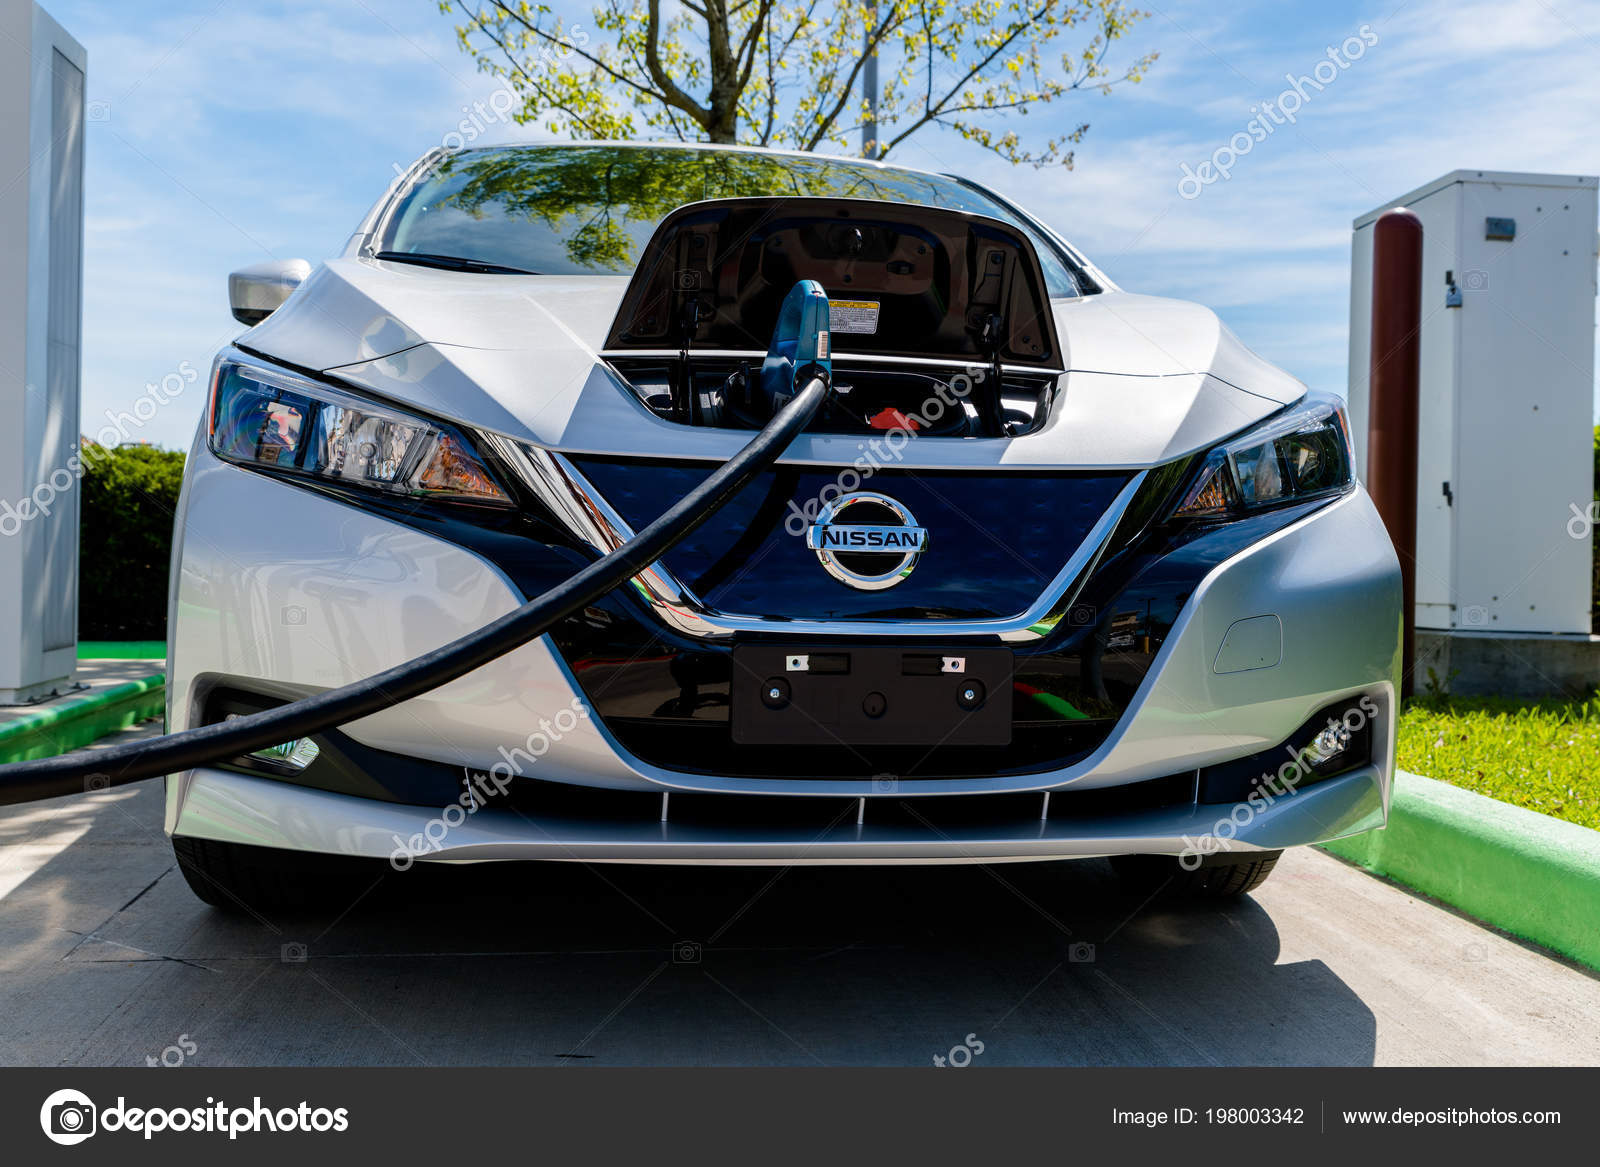 Pearland Texas March 2018 New 2018 Nissan Leaf Electric Car